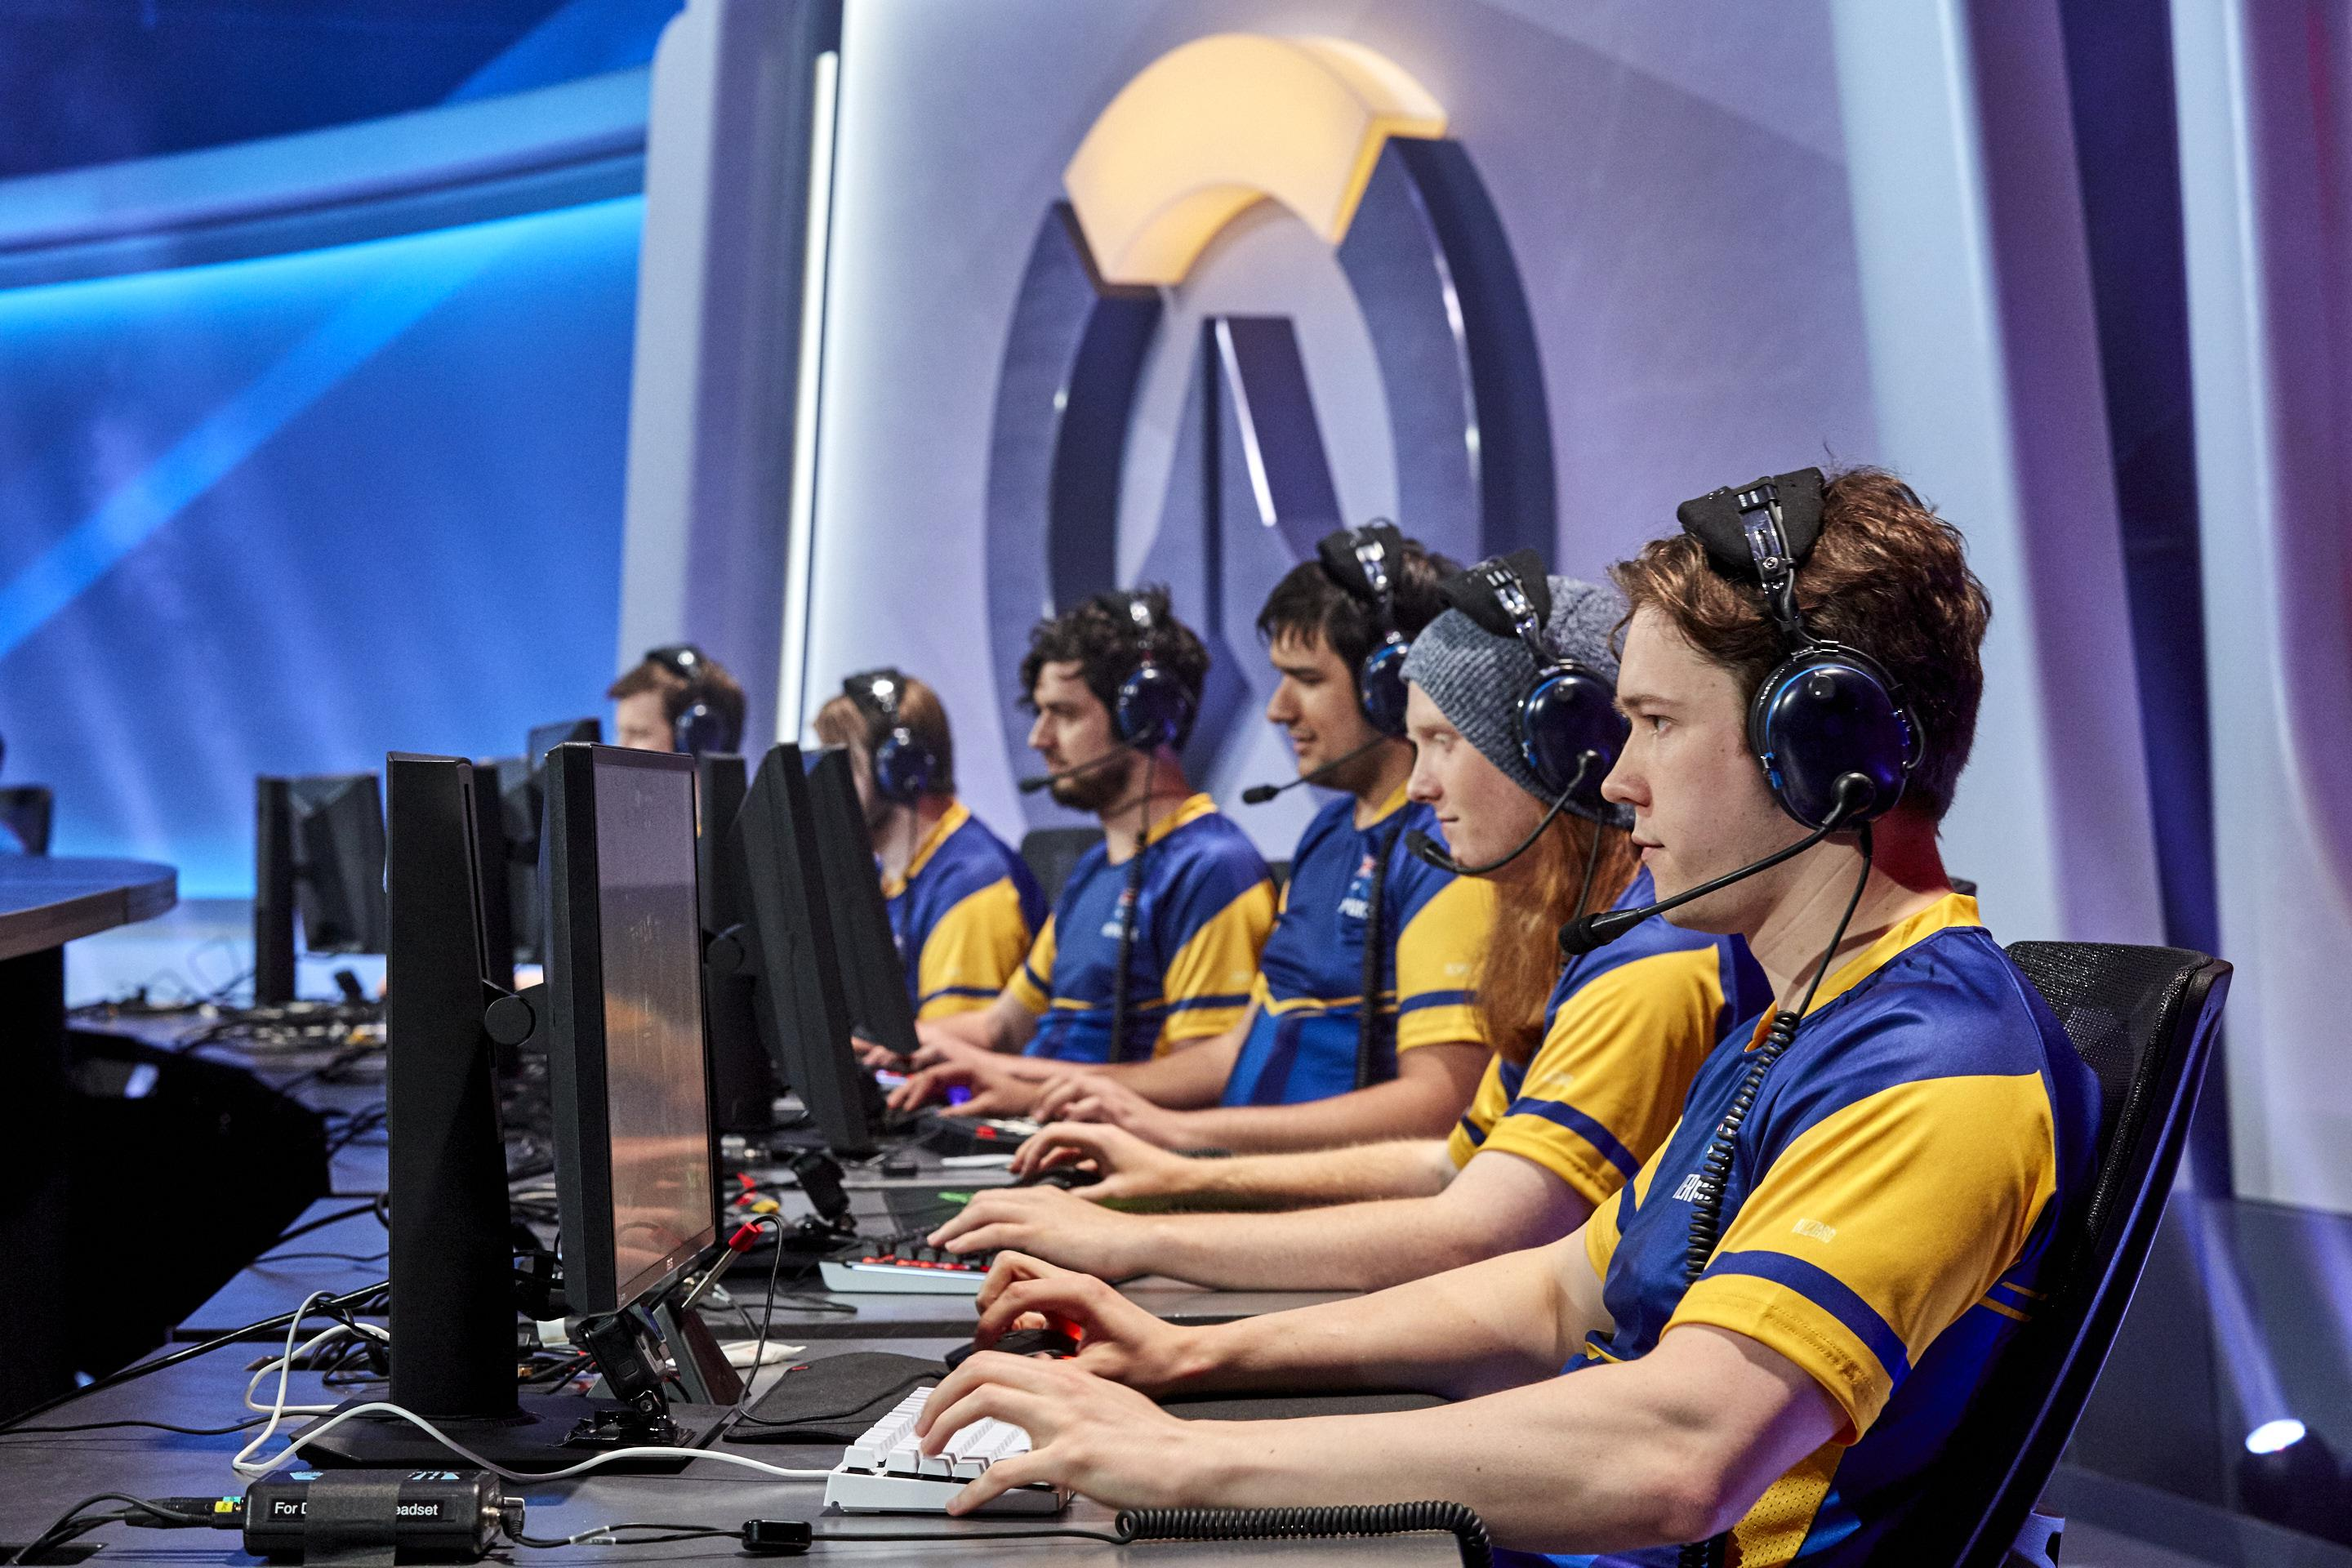 Overwatch eSports stars in action at the World Cup in Canada last month